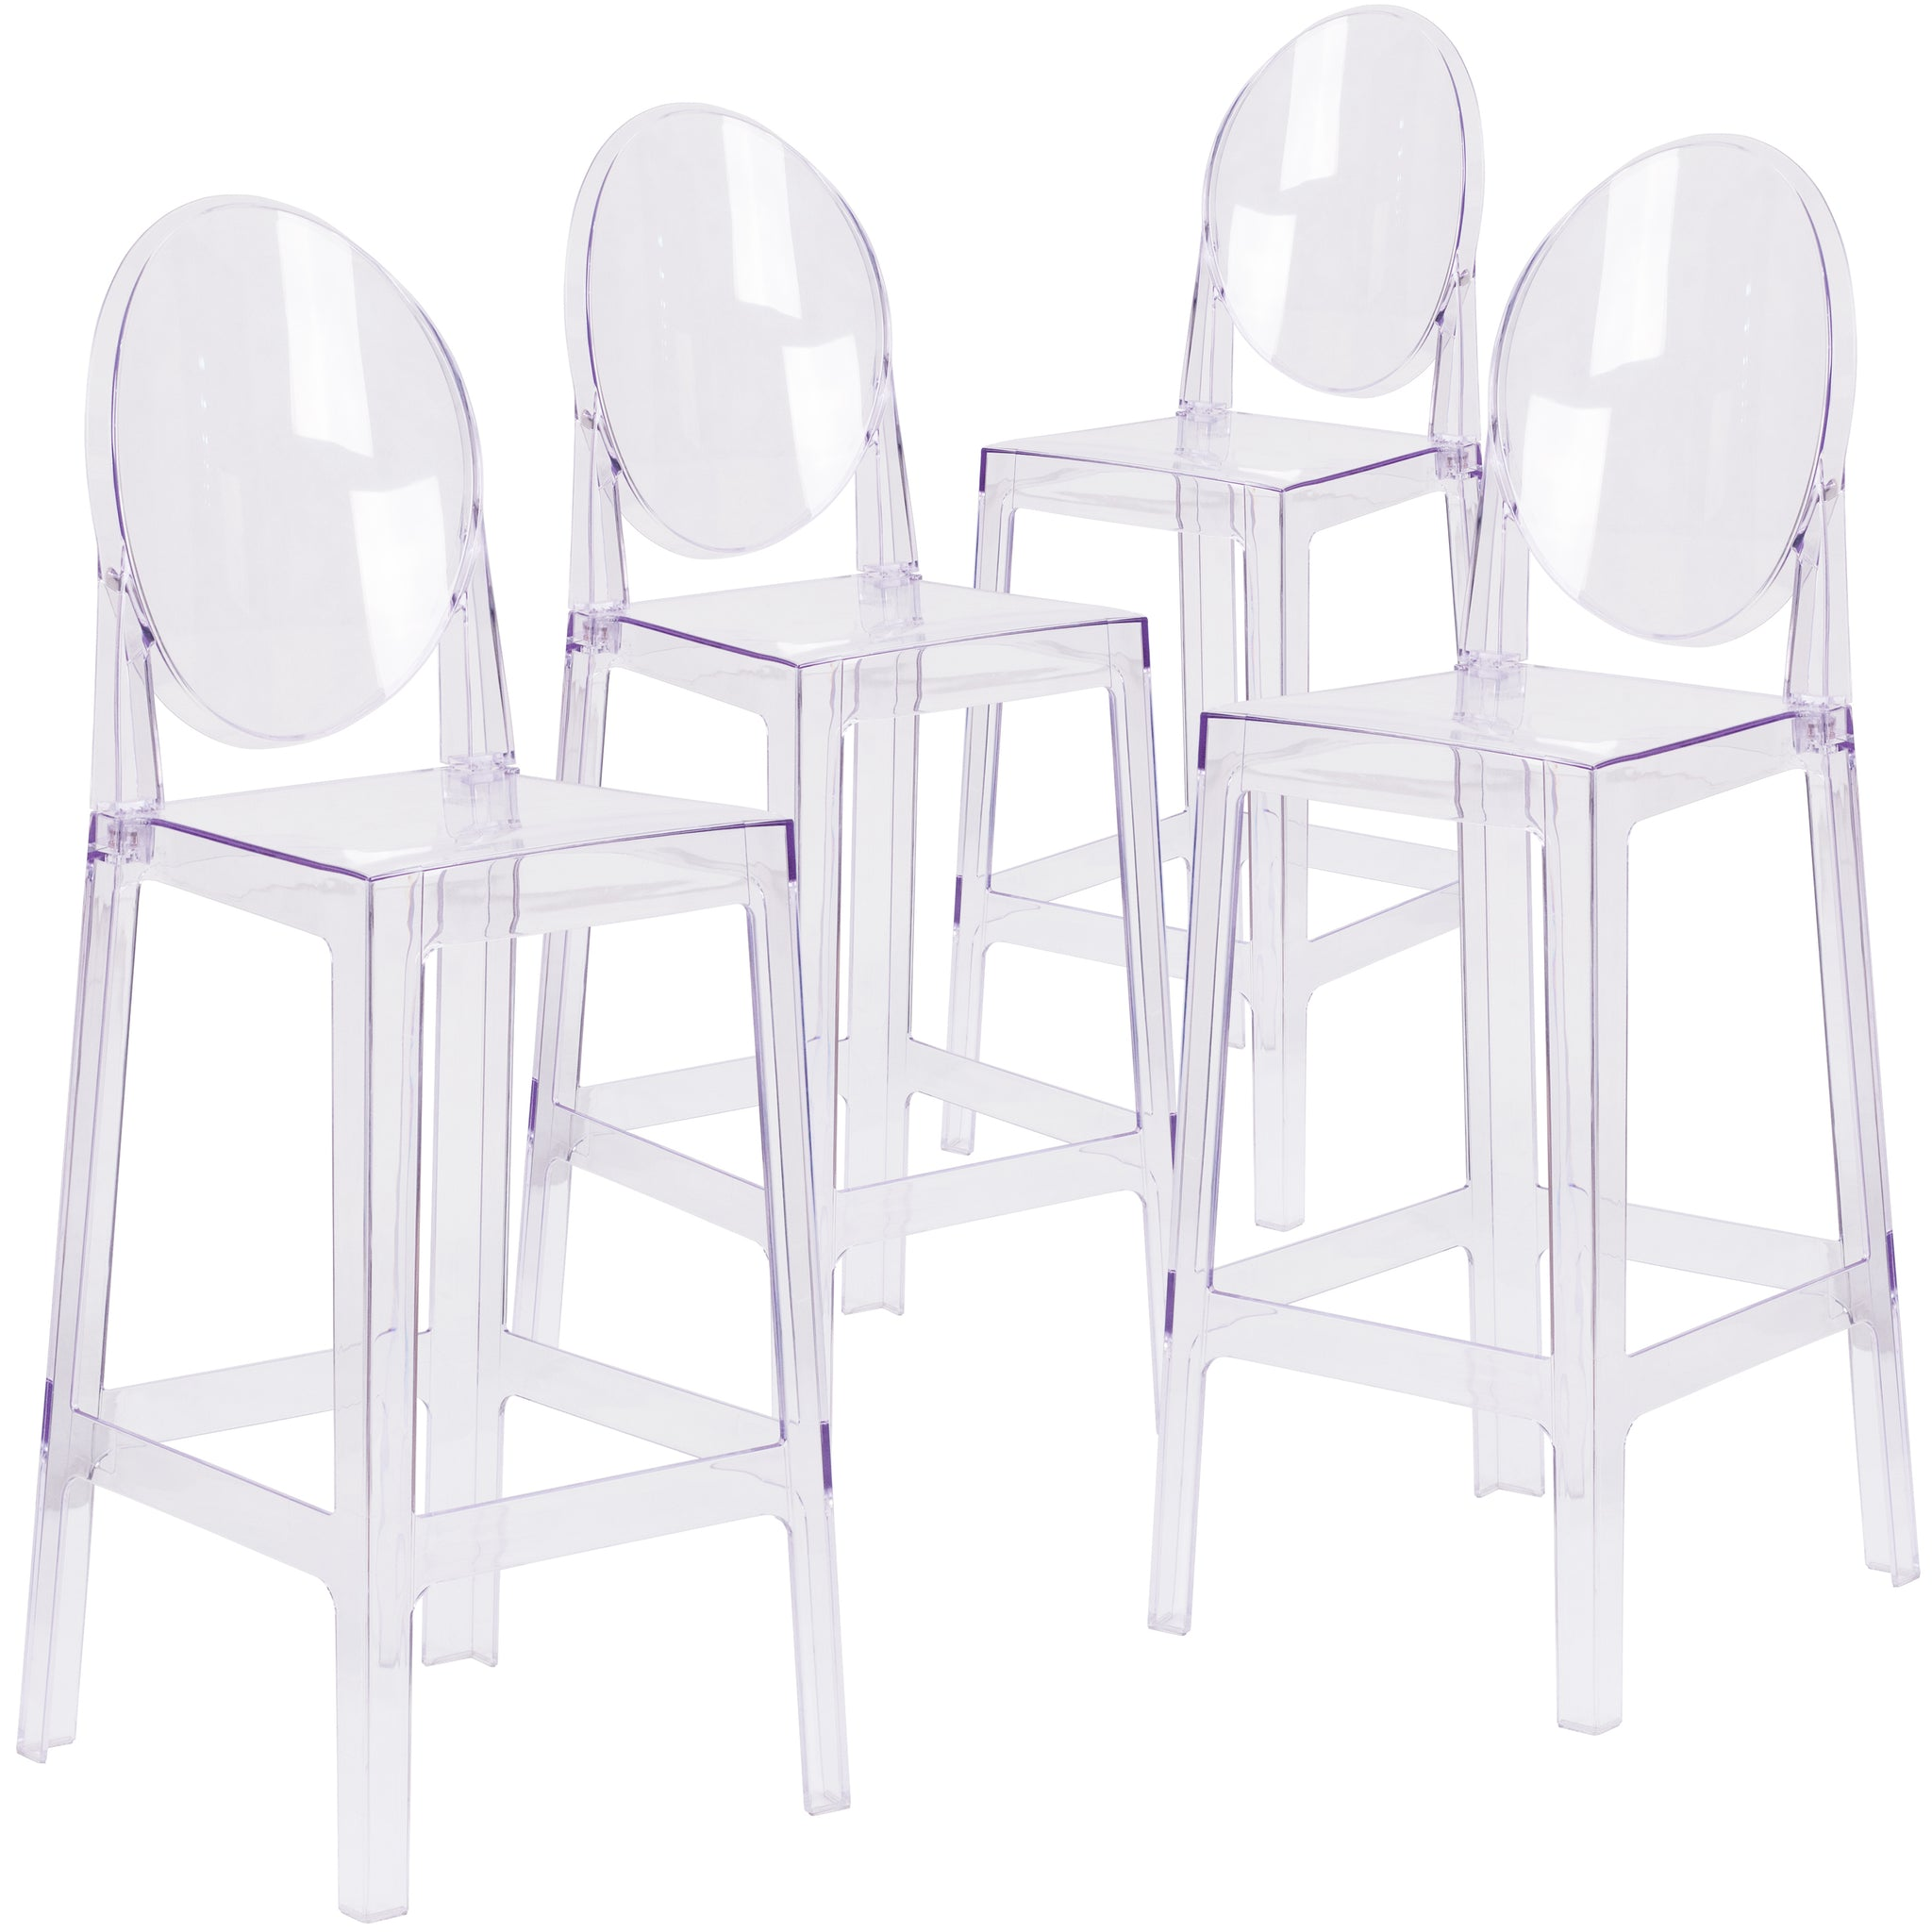 4 Pk. Ghost Barstool in Transparent Crystal with Oval Back: Transparent Crystal